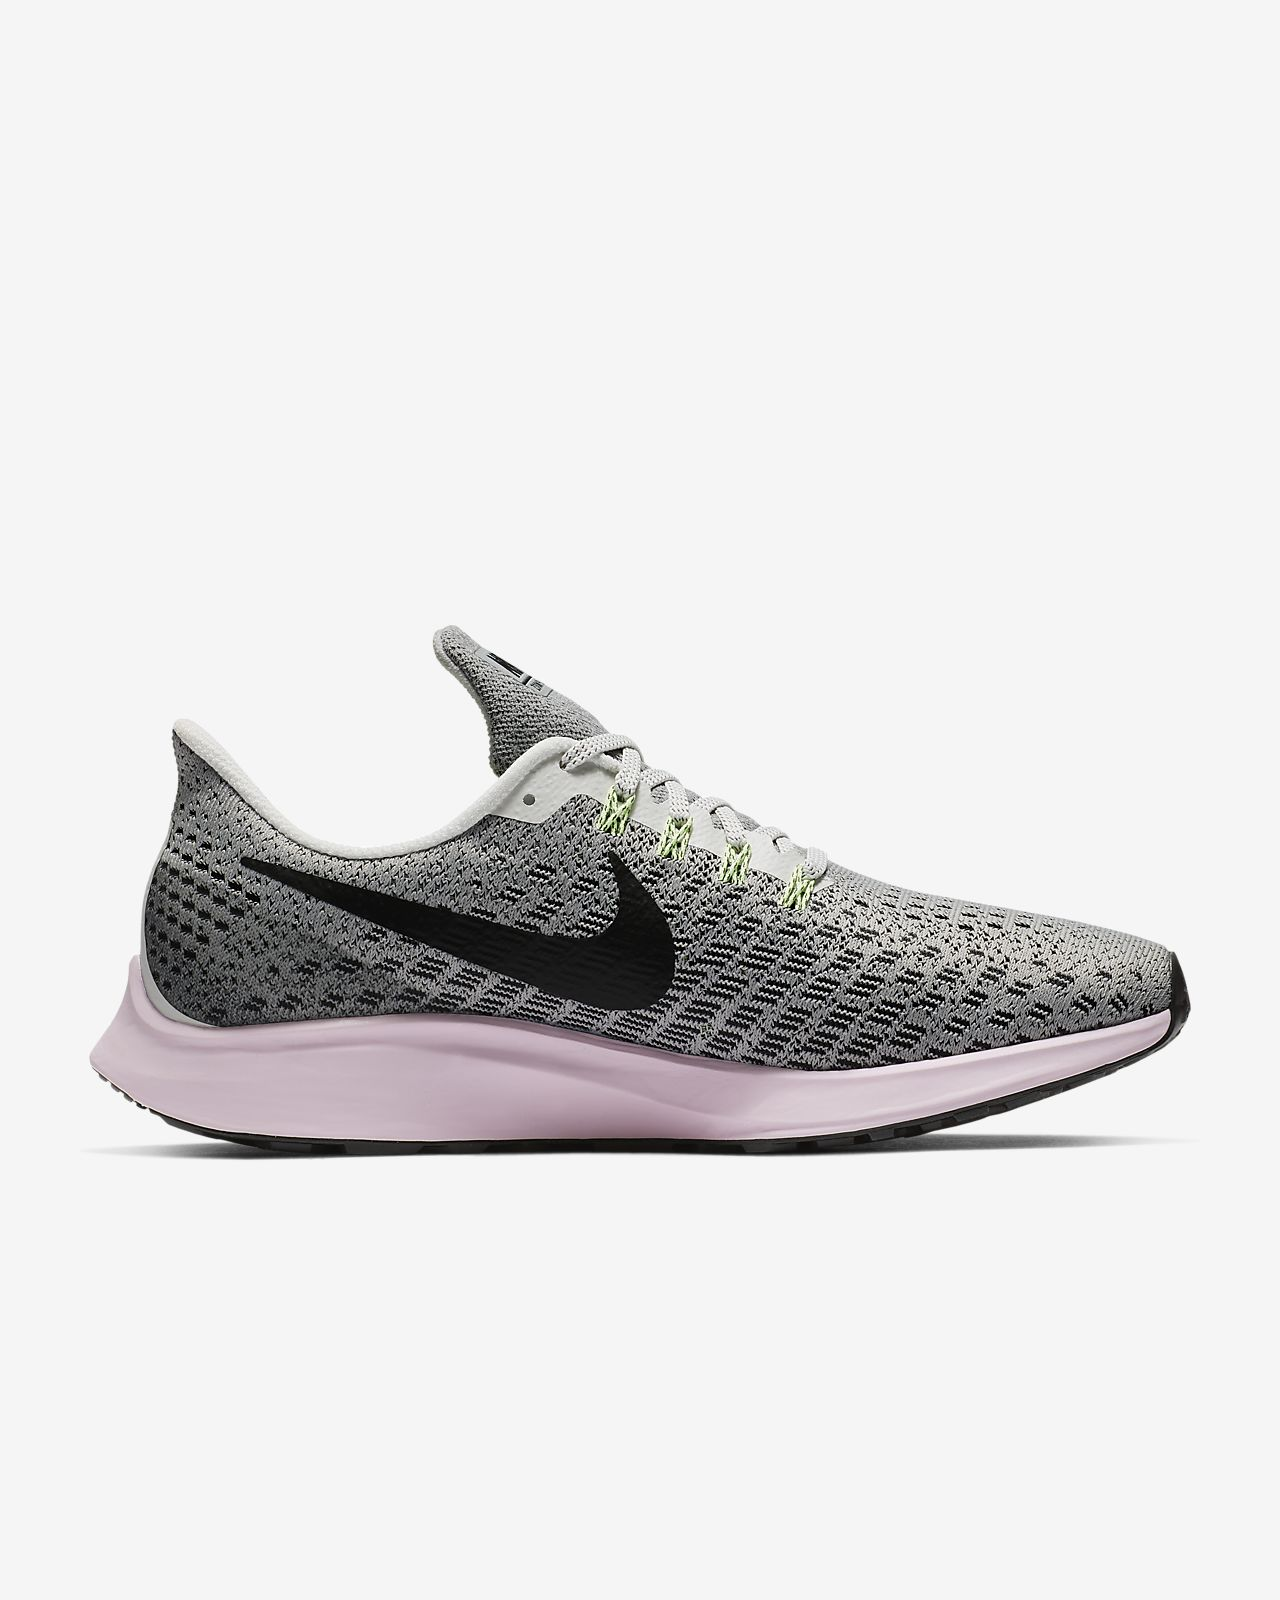 27c3ac5f2893 Nike Air Zoom Pegasus 35 Women s Running Shoe. Nike.com GB